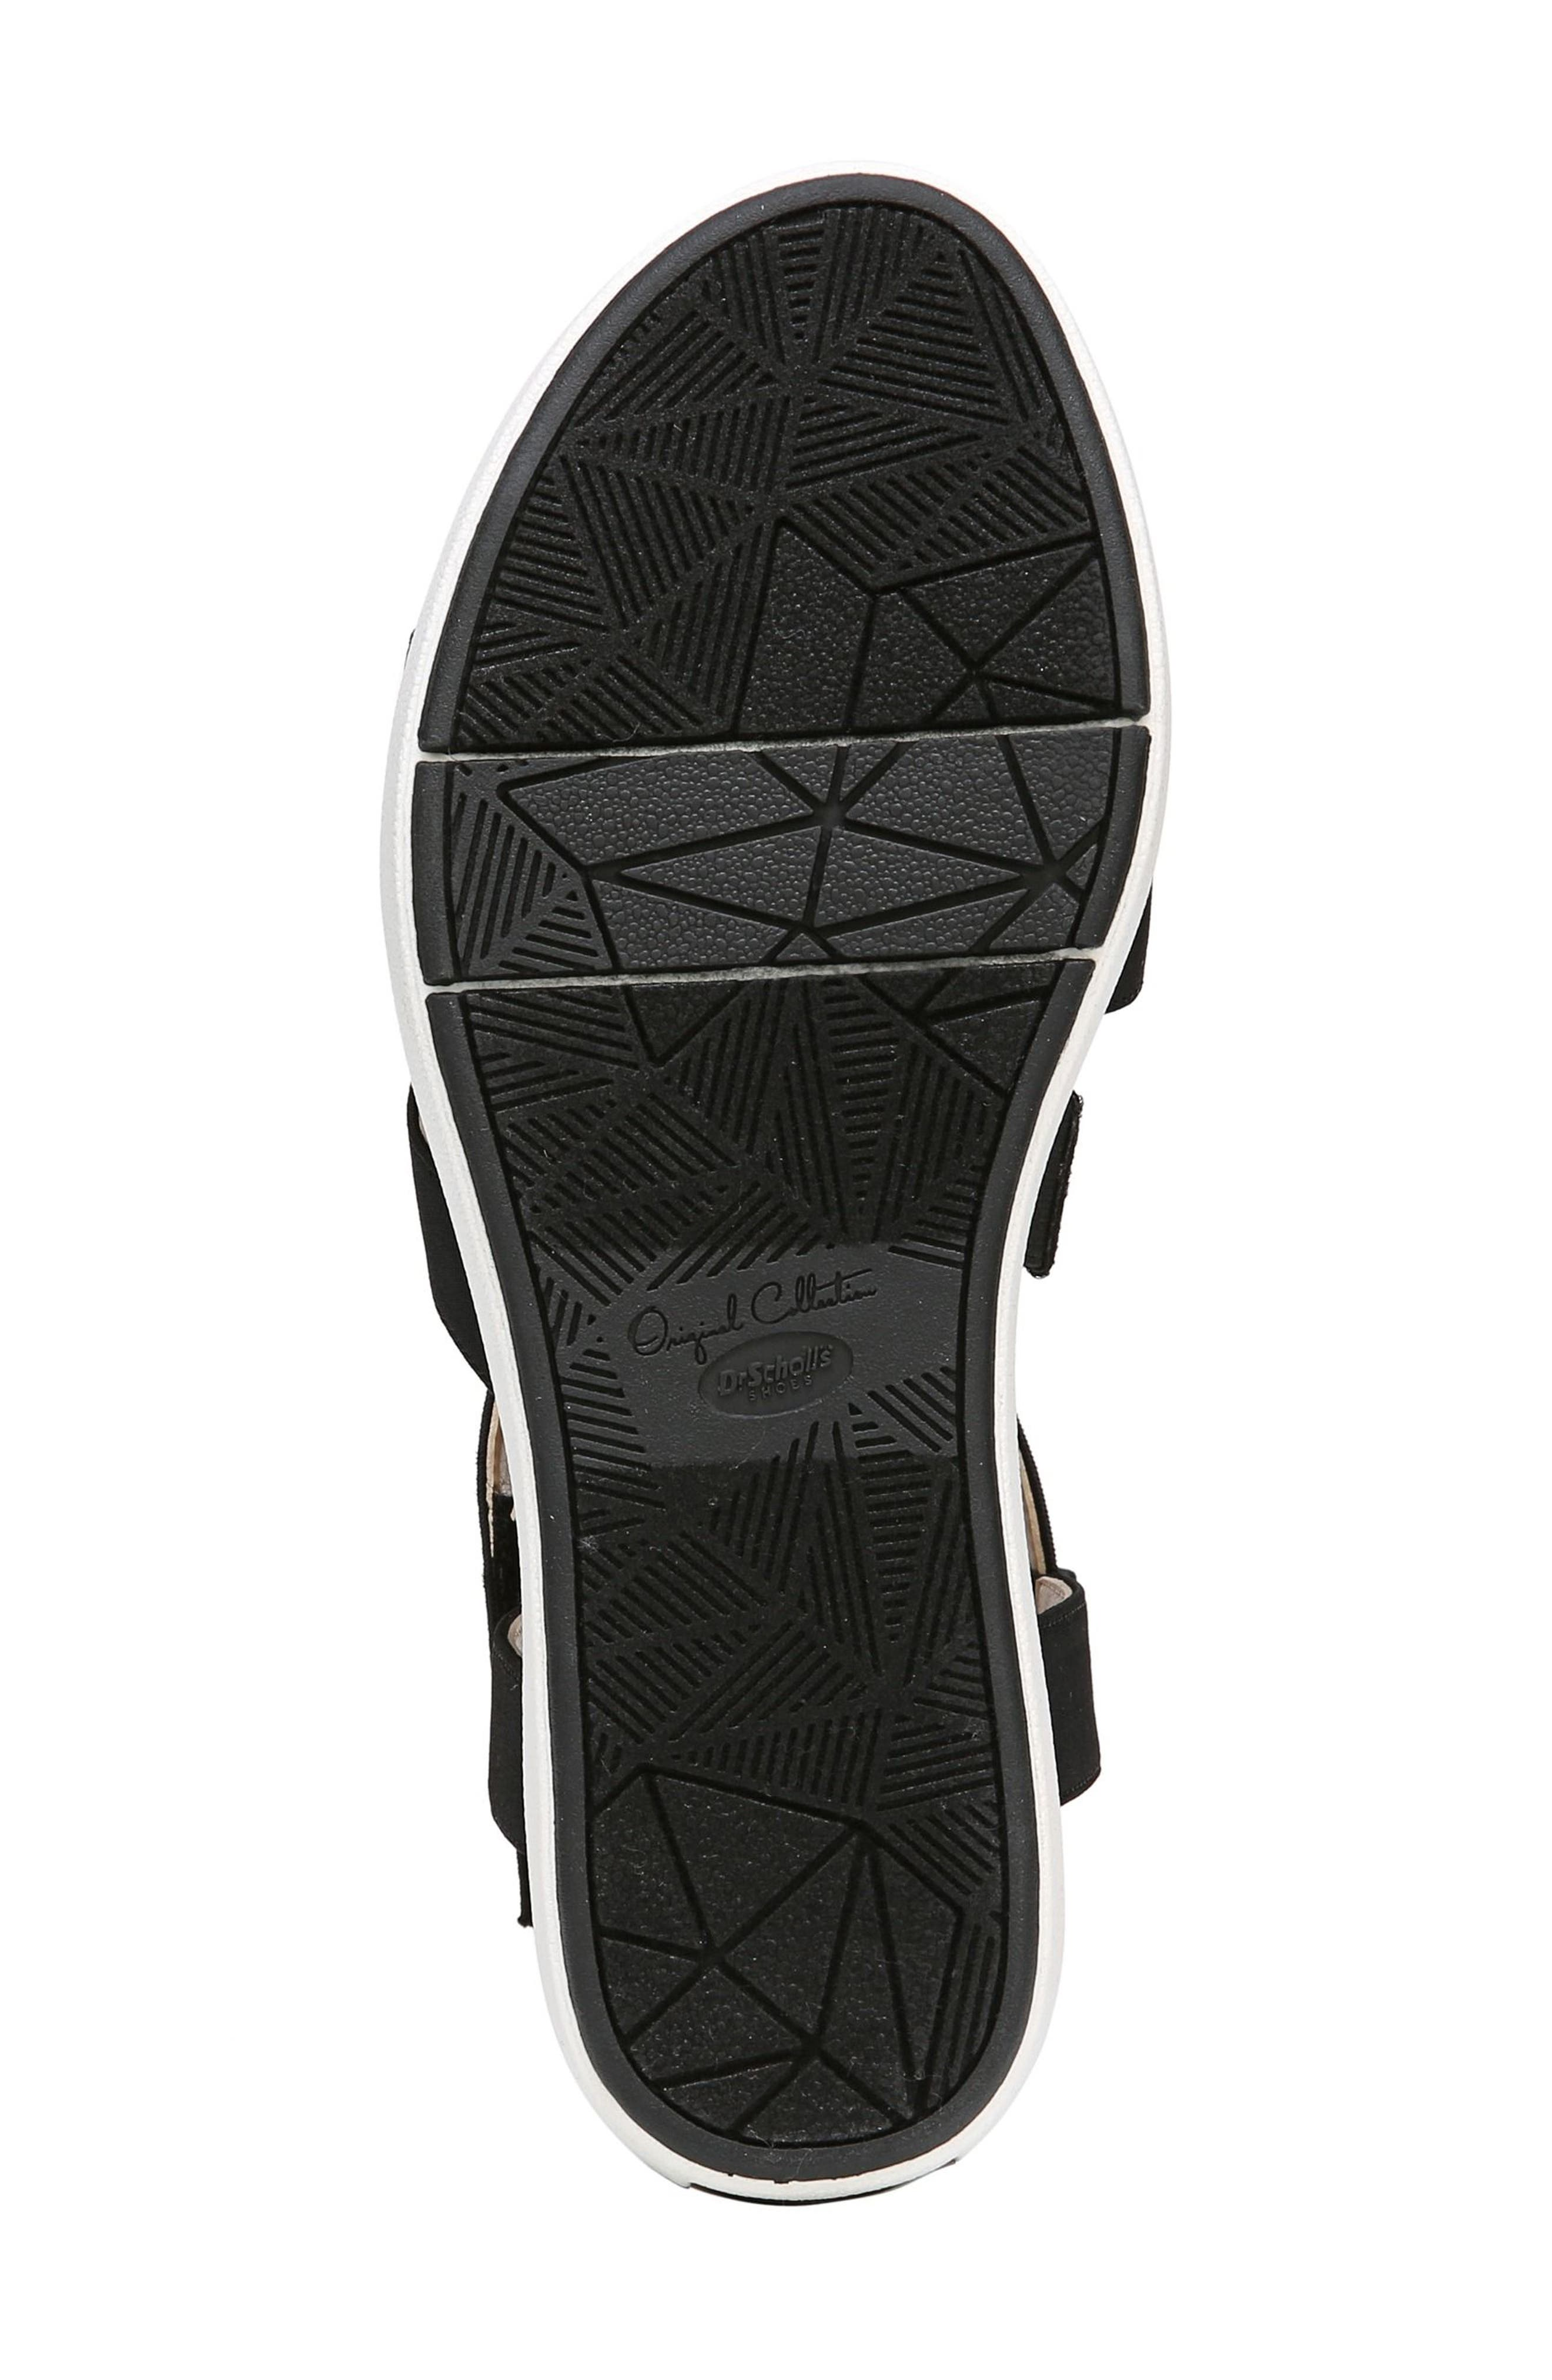 Social Wedge Sandal,                             Alternate thumbnail 6, color,                             BLACK